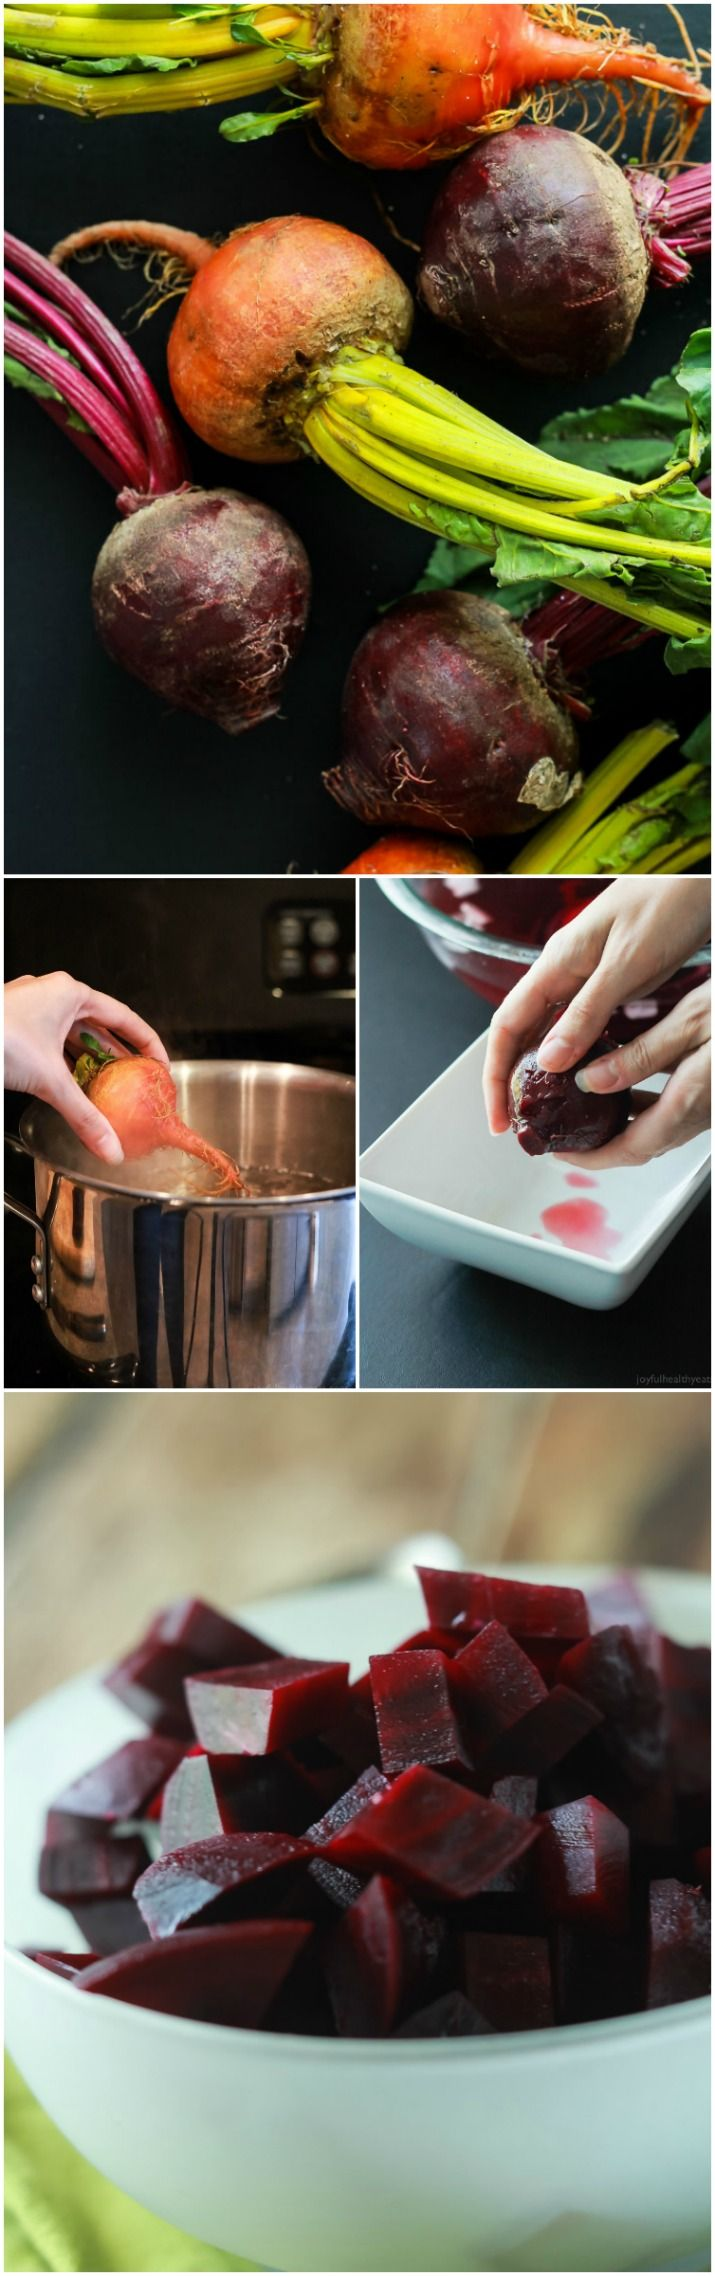 Easy step by step tutorial on how to cook beets. Great for smoothies, side dishes, salads, or just snacking. Full of nutrients and antioxidants! | joyfulhealthyeats.com #healthyeating